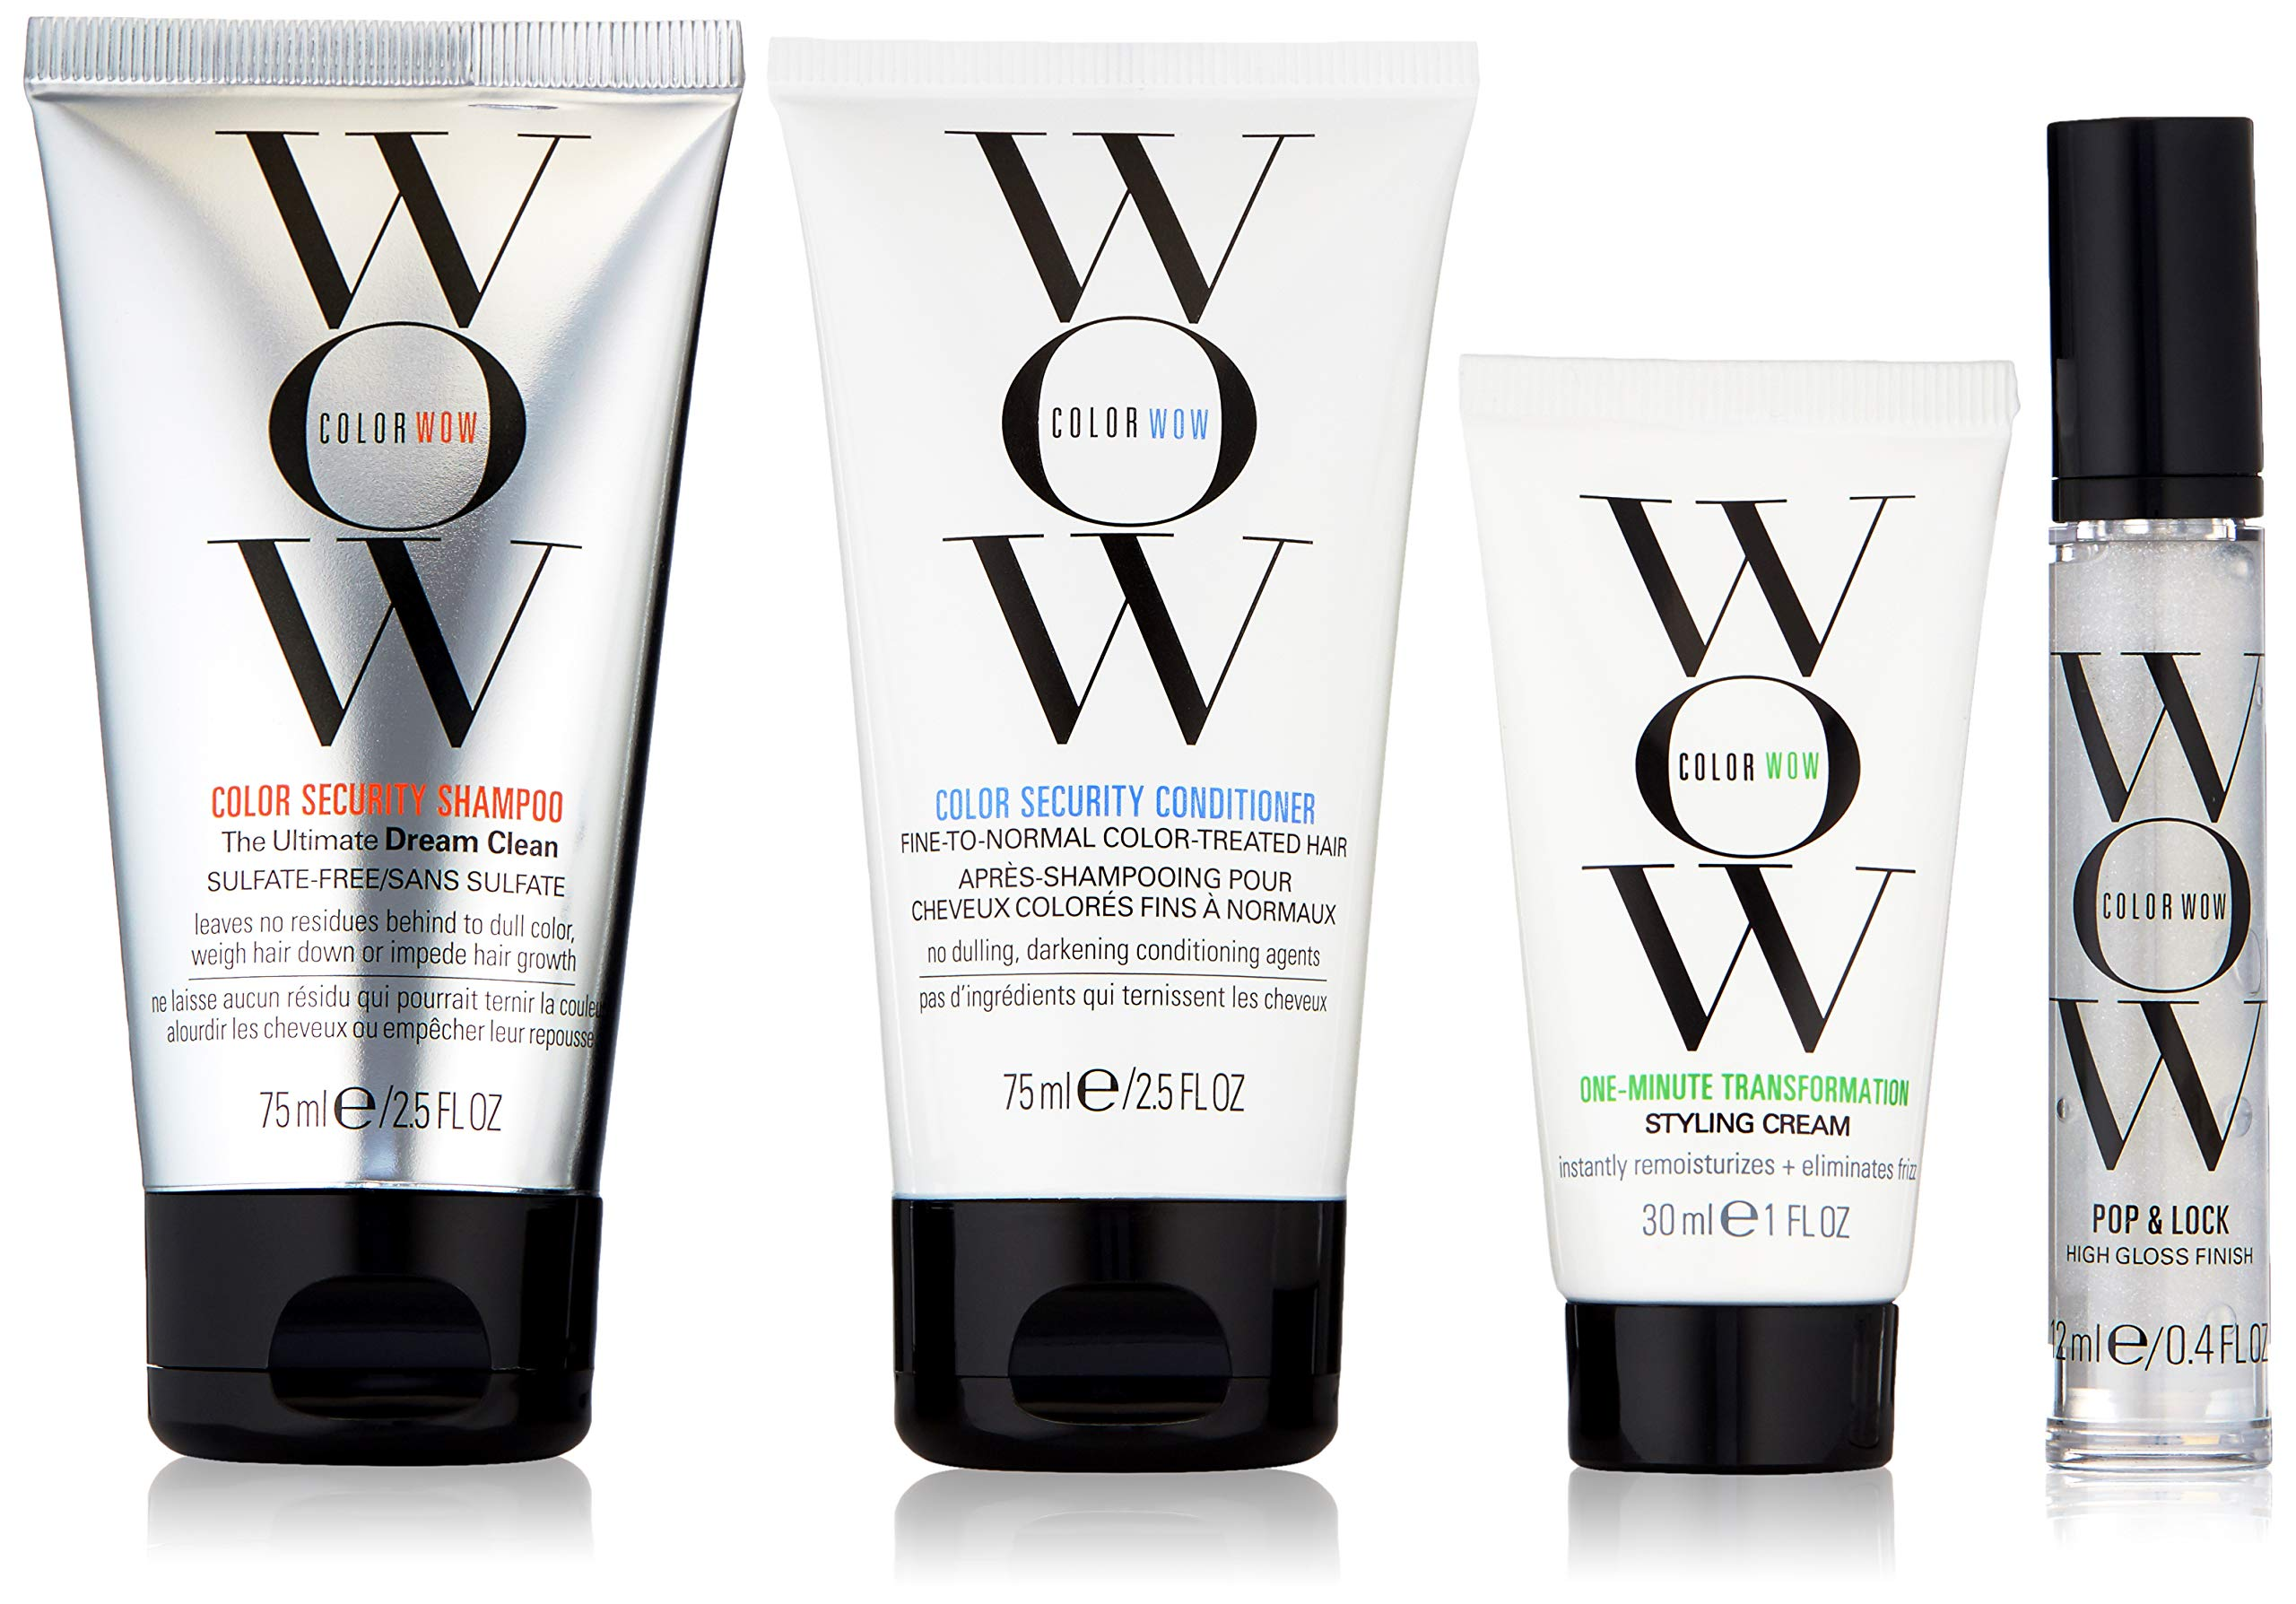 COLOR WOW Quick Frizz Fixes! Travel Kit Includes Shampoo, Conditioner, Styling Cream and Gloss Treatment, 6.4 Fl Oz by COLOR WOW